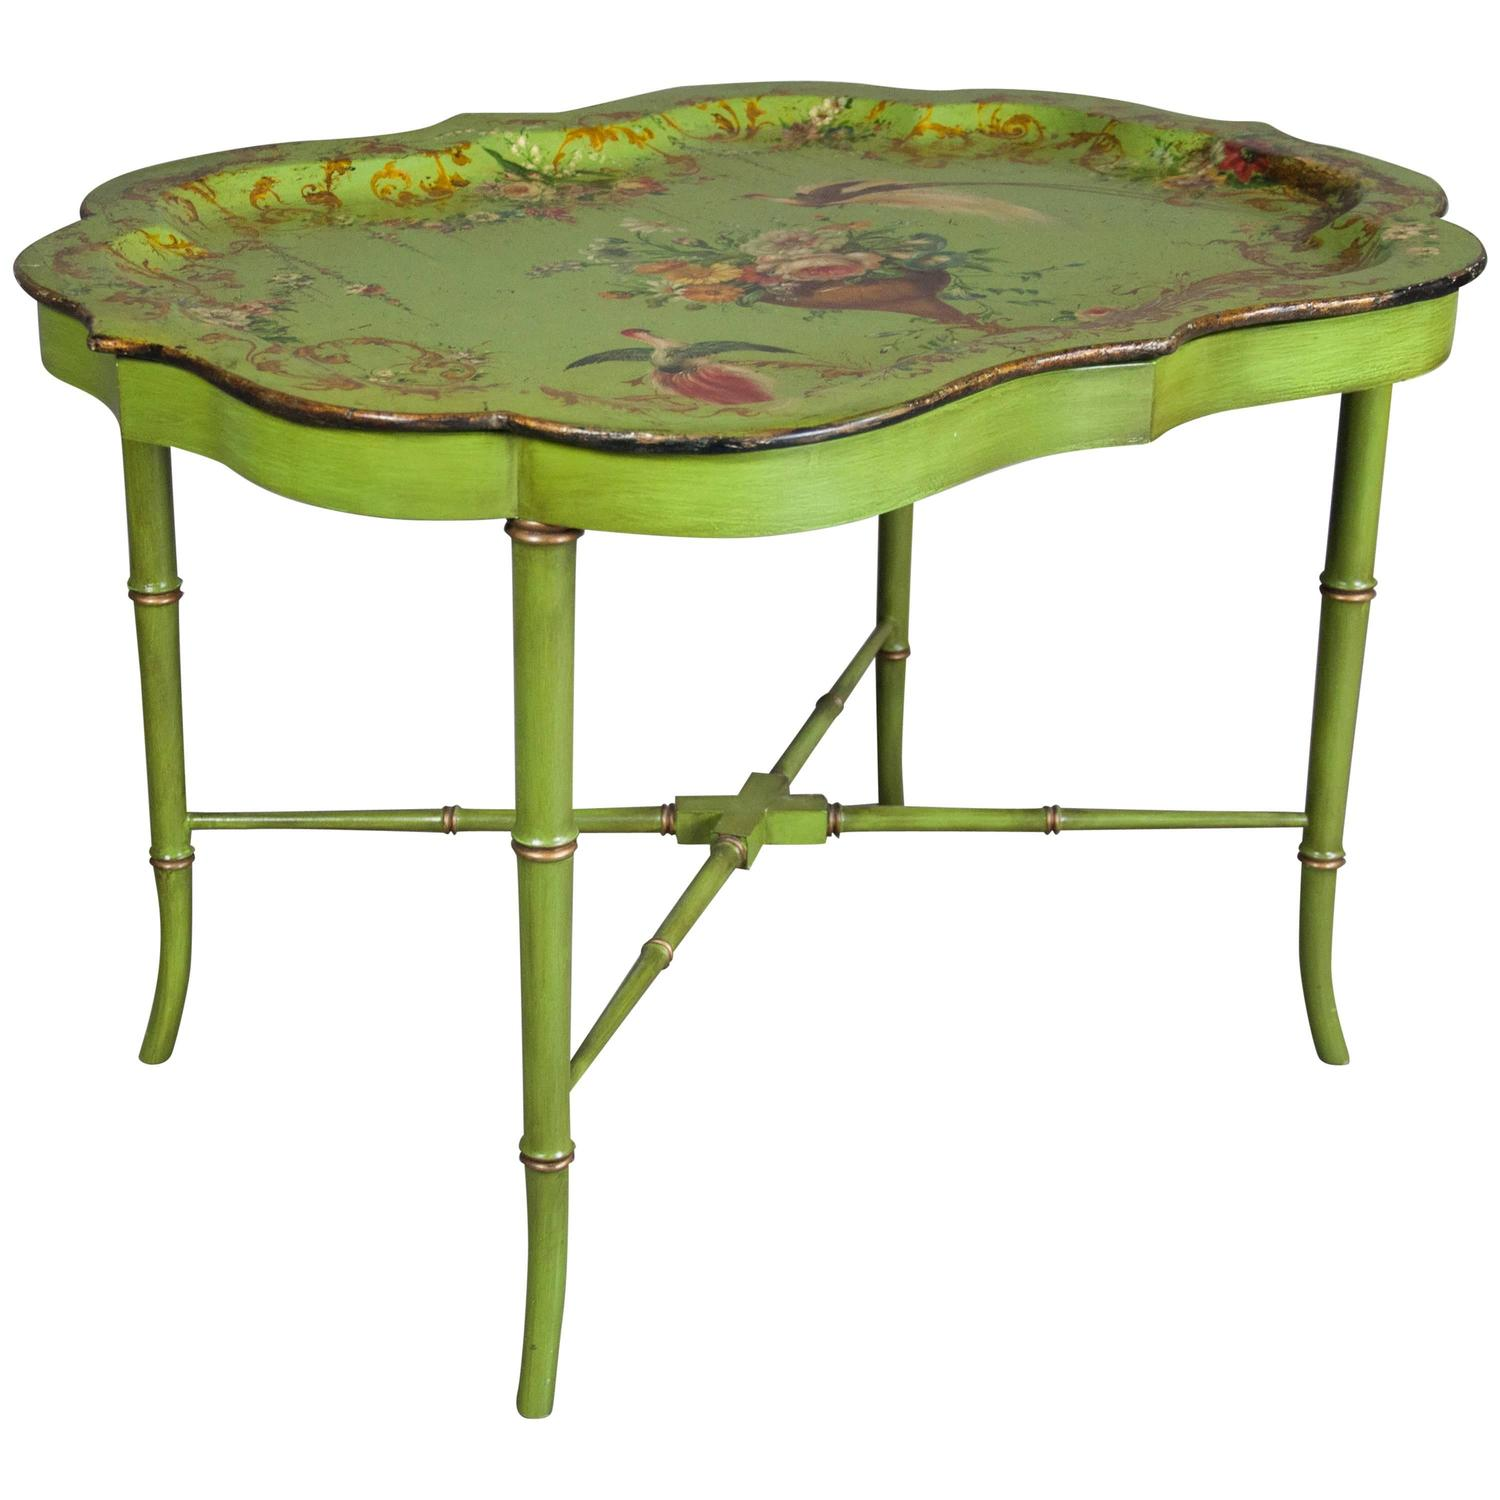 Victorian Papier M¢ché Tray Top Coffee Table at 1stdibs